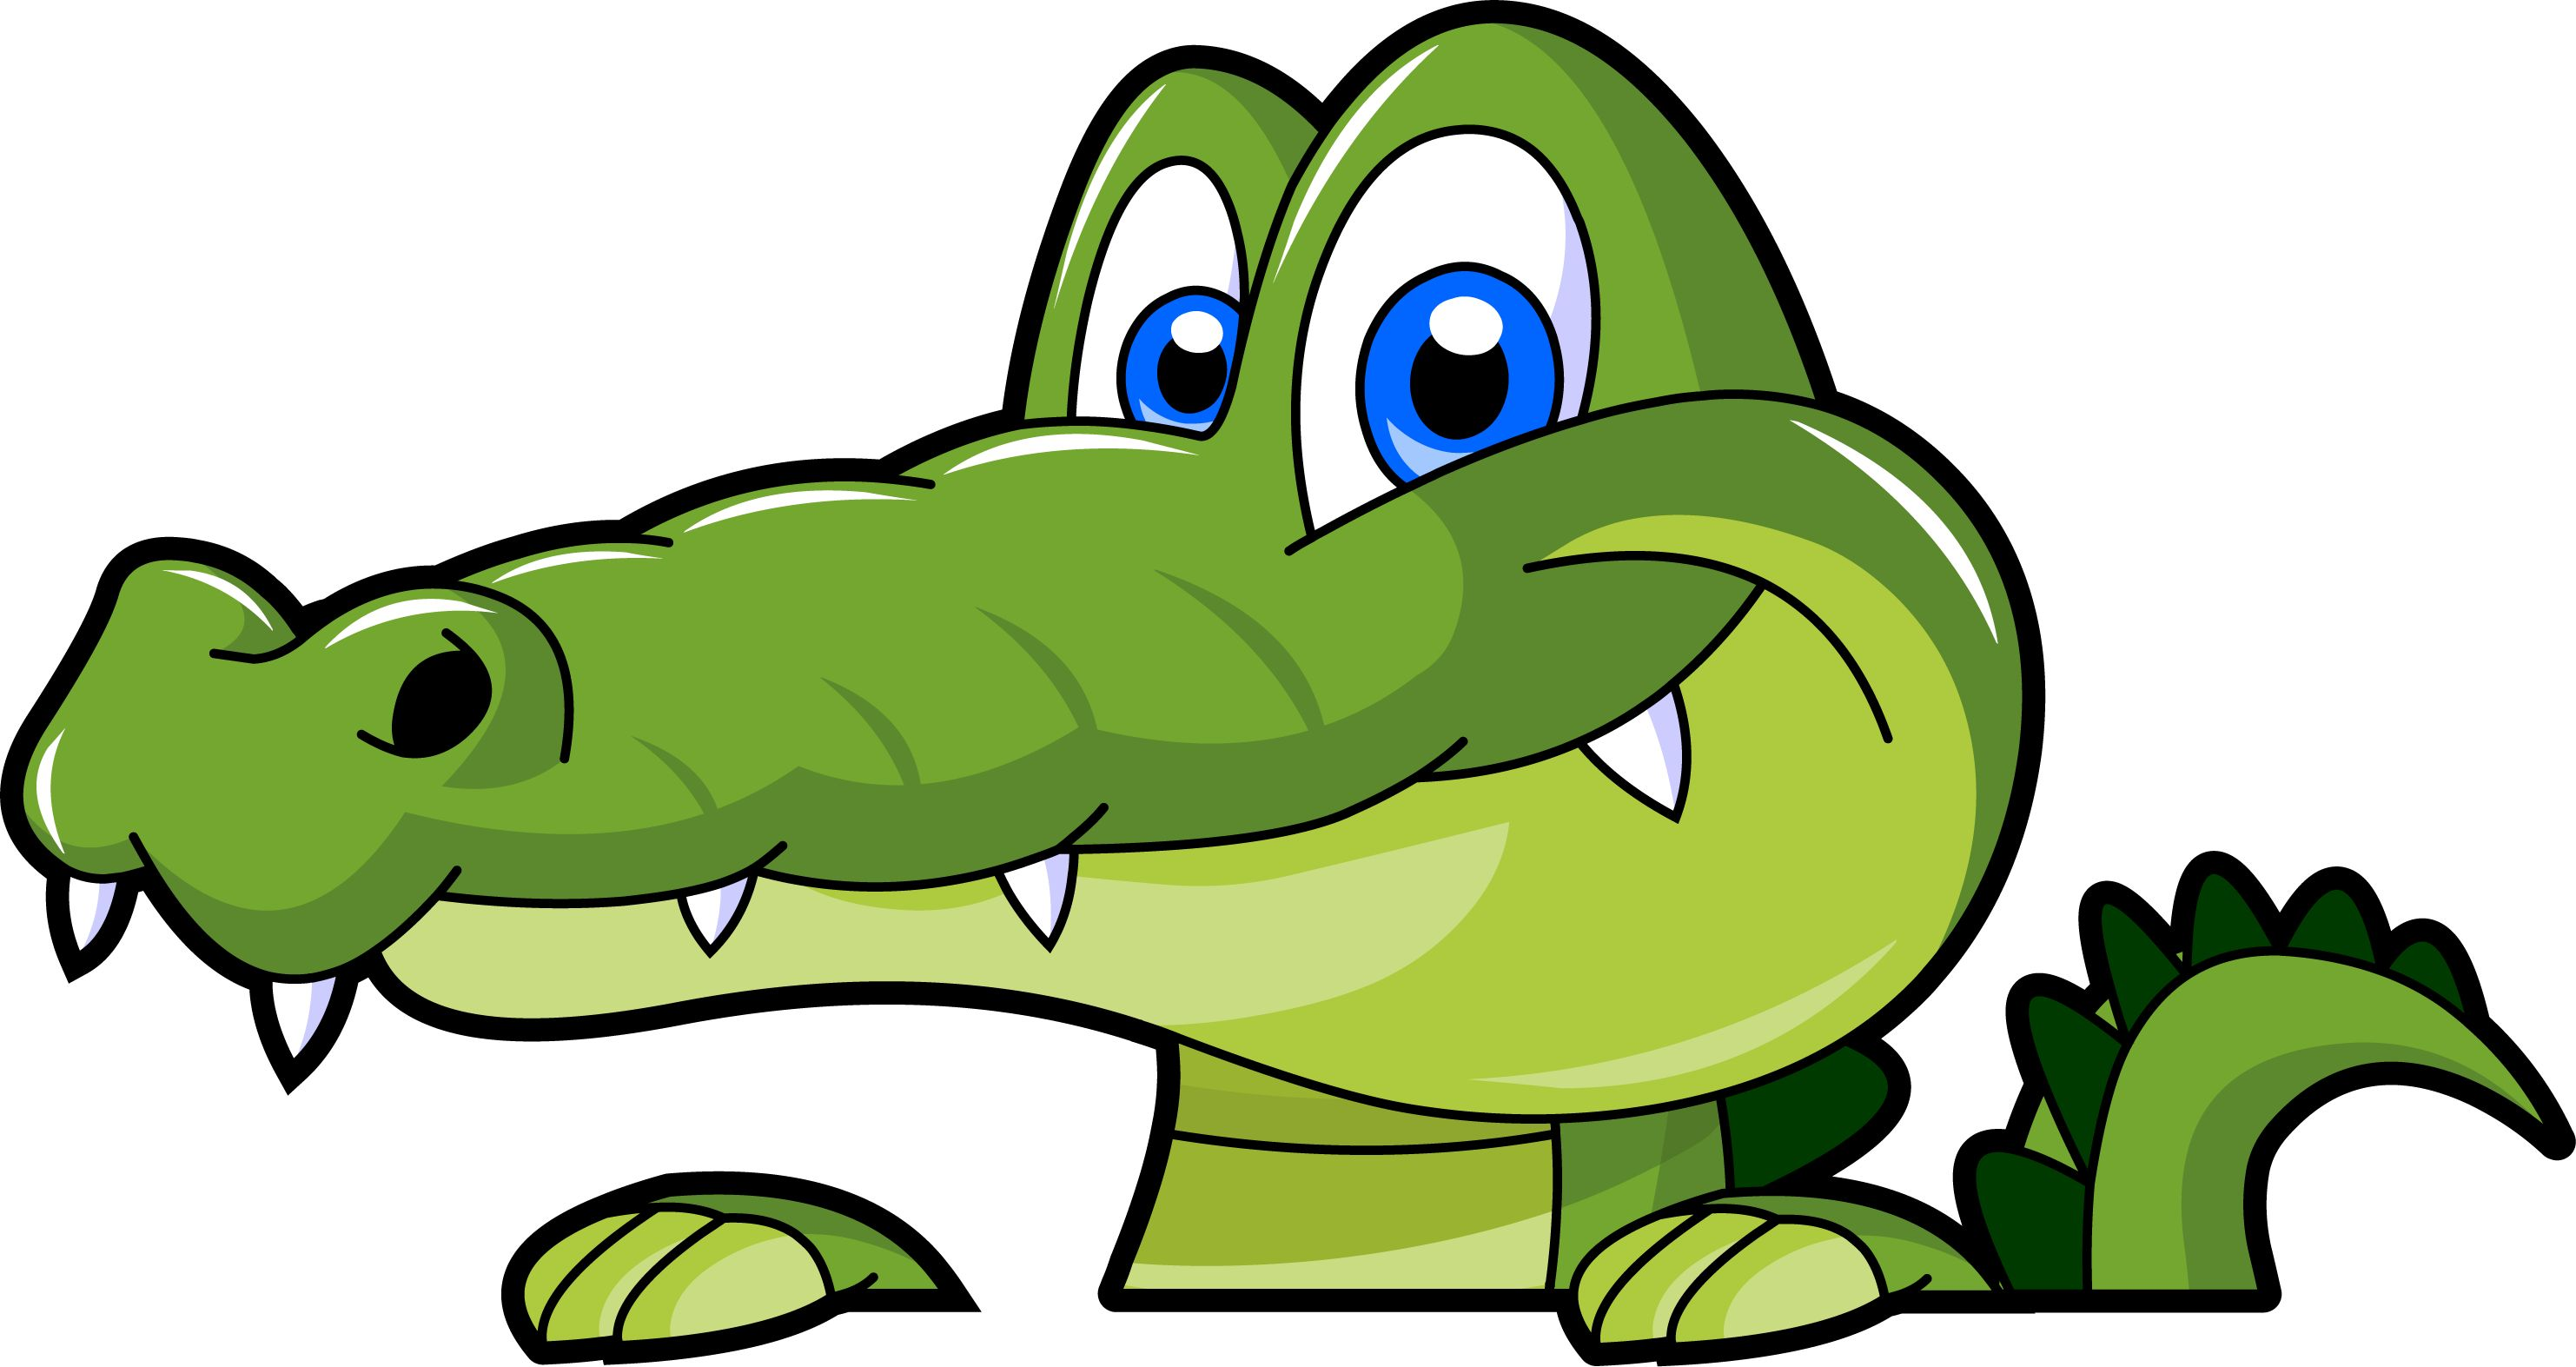 a05-03-cartoon-alligator-face.jpg - ClipArt Best - ClipArt ... - photo#17